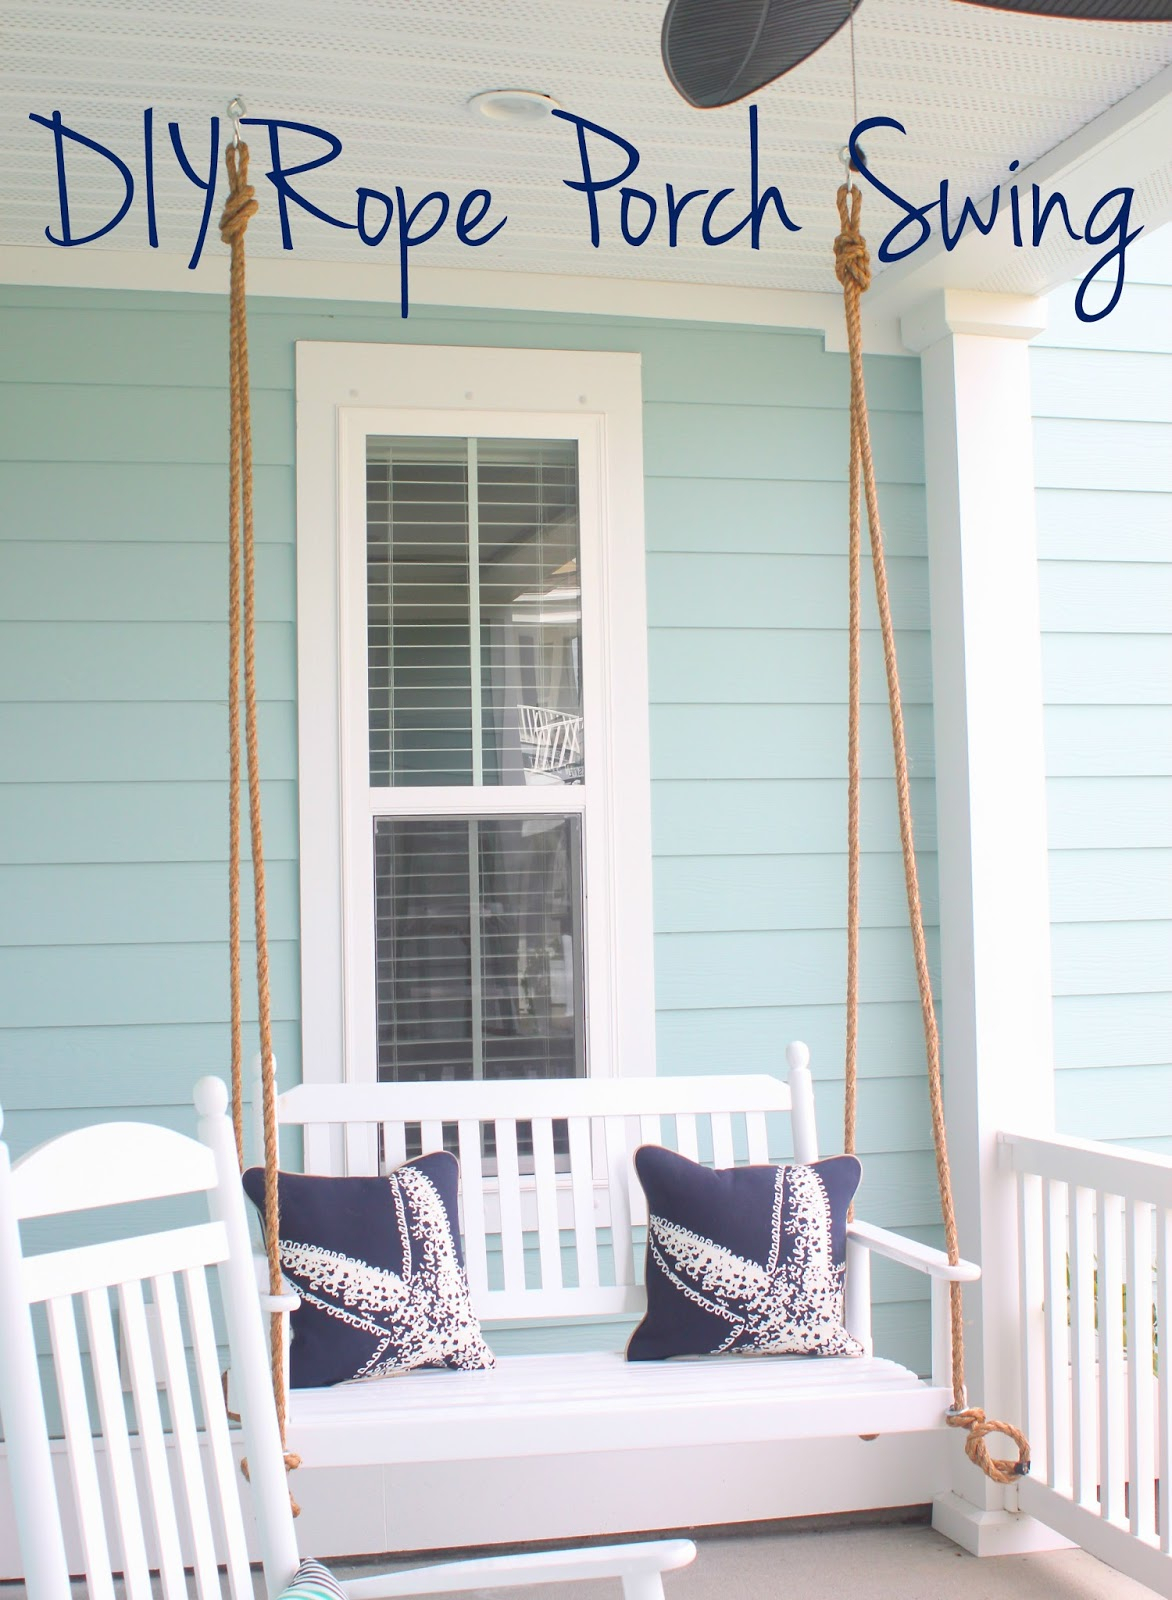 Borrowed Heaven: Diy Rope Porch Swing Pertaining To Hanging Daybed Rope Porch Swings (Image 6 of 25)